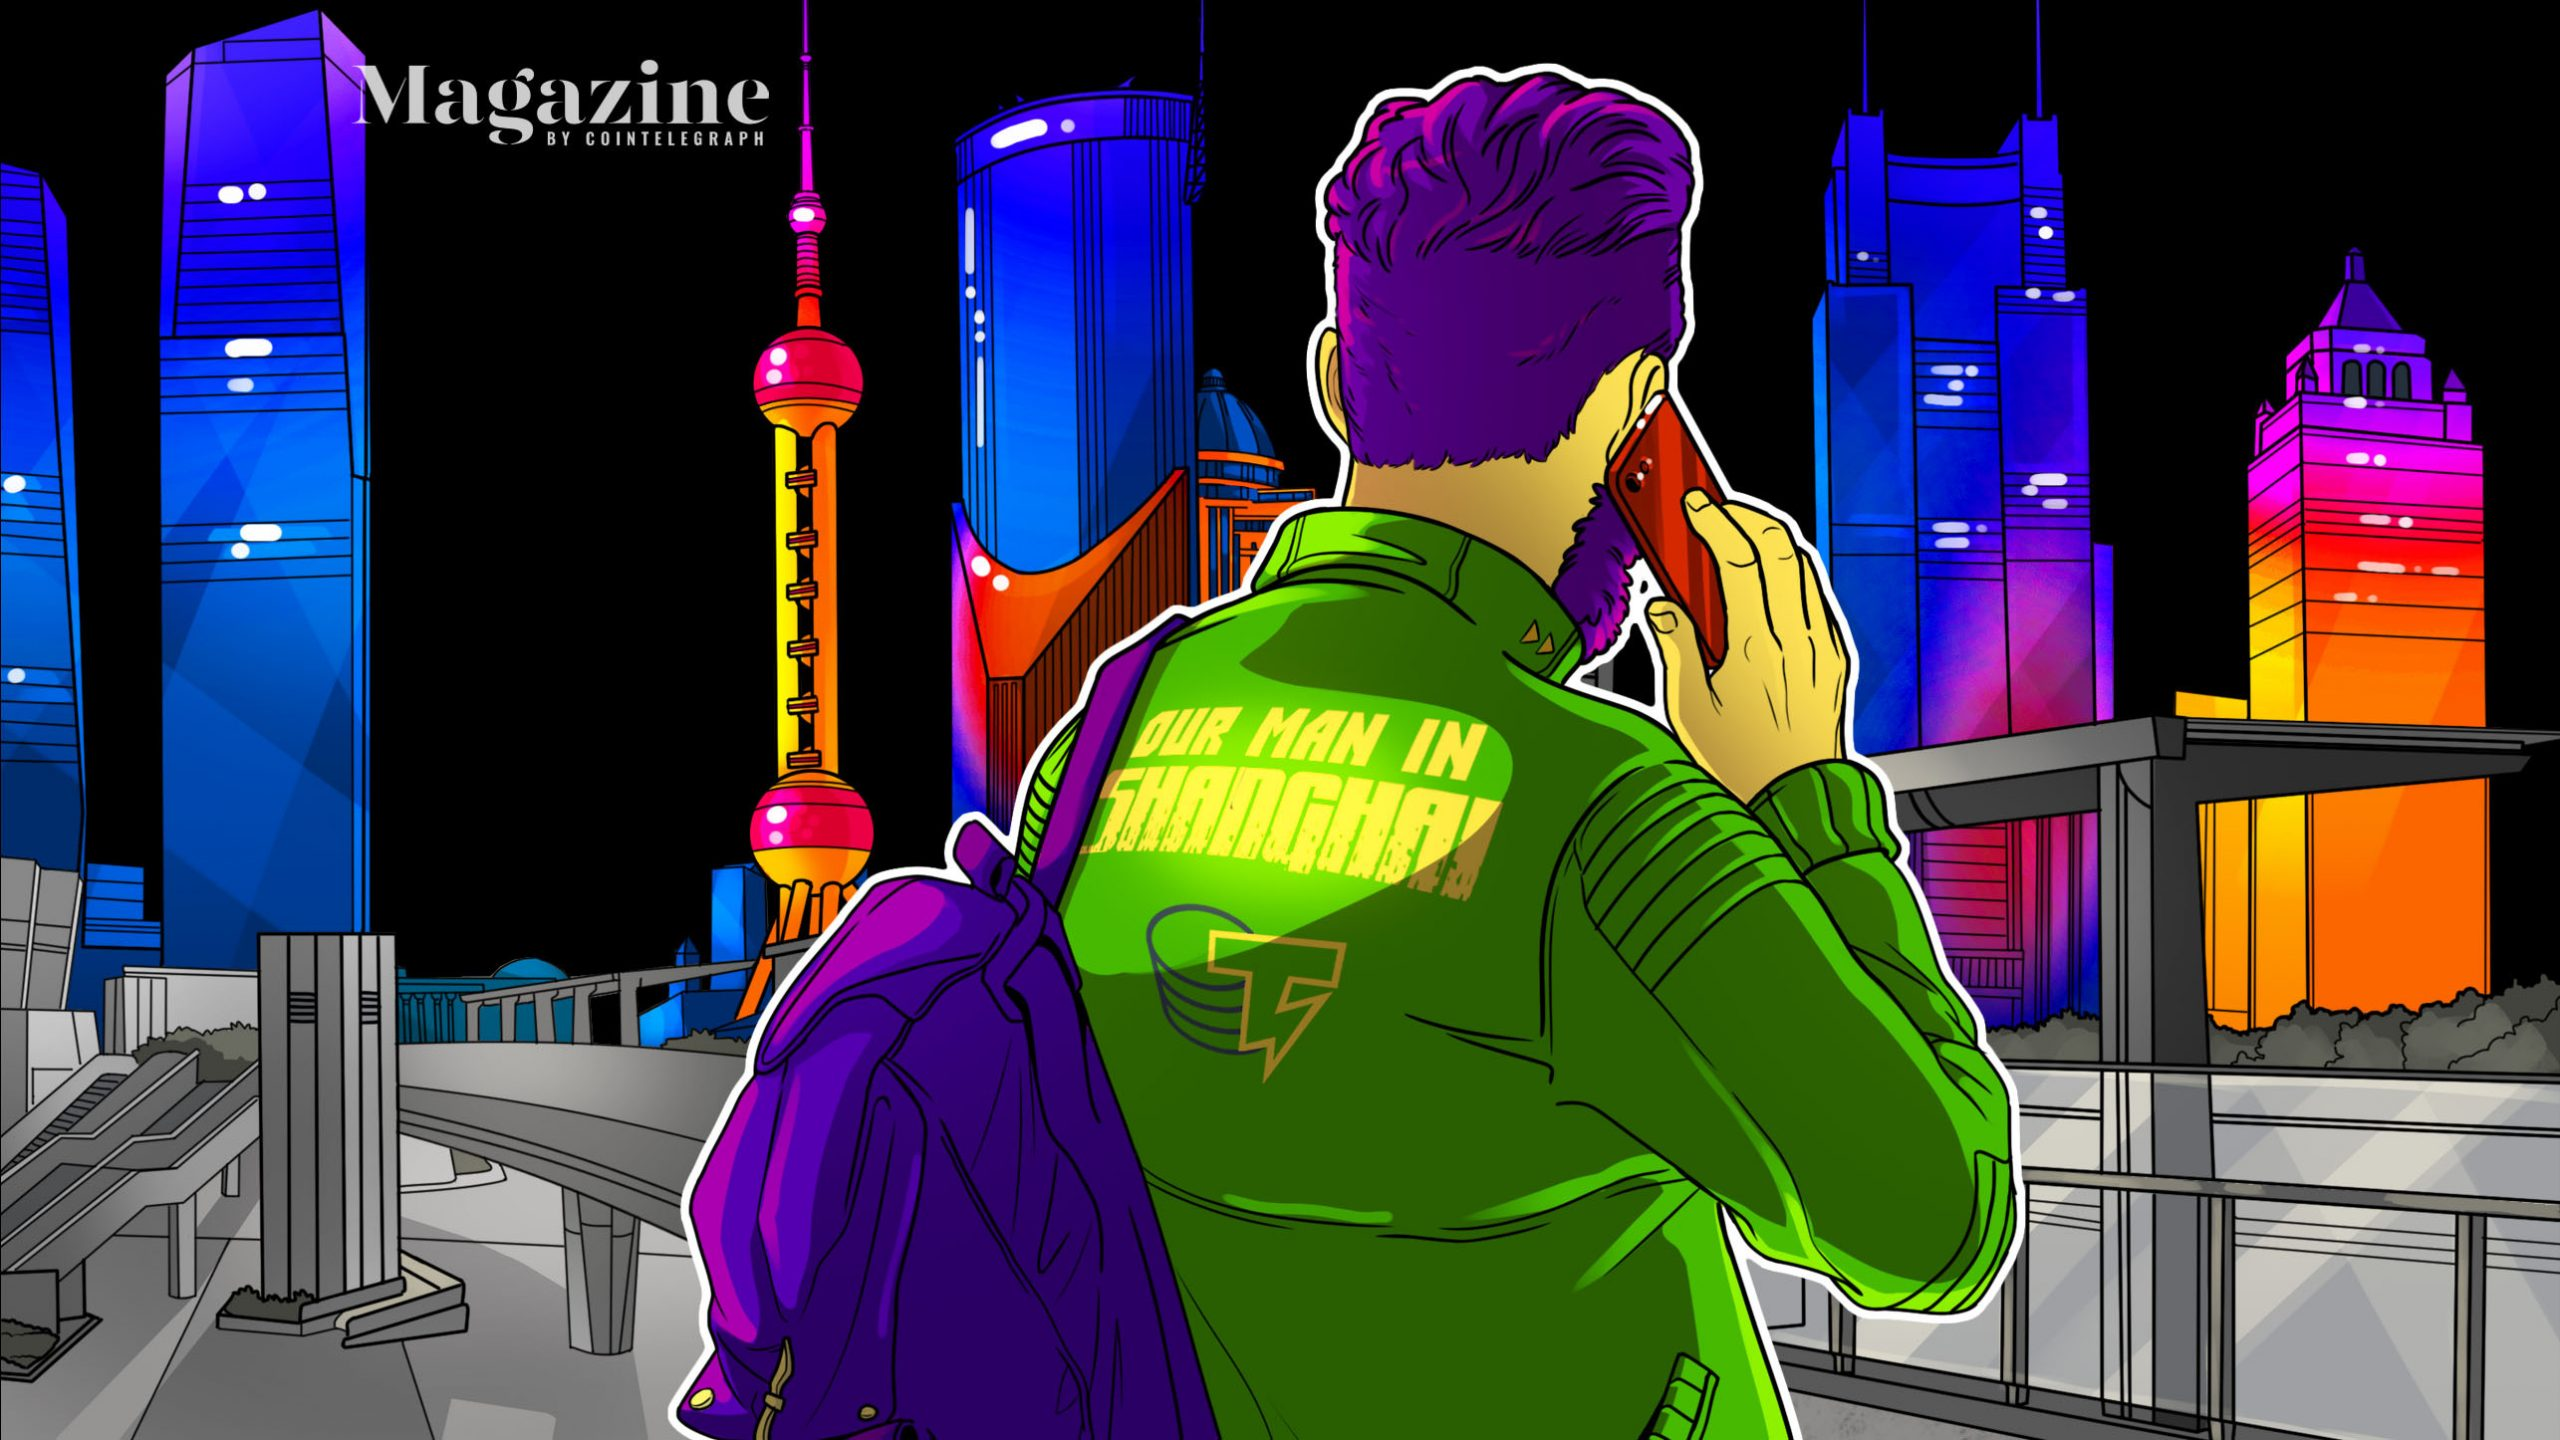 shanghai man rmb stablecoin in shanghai evergrande fud and ftx gains ground scaled